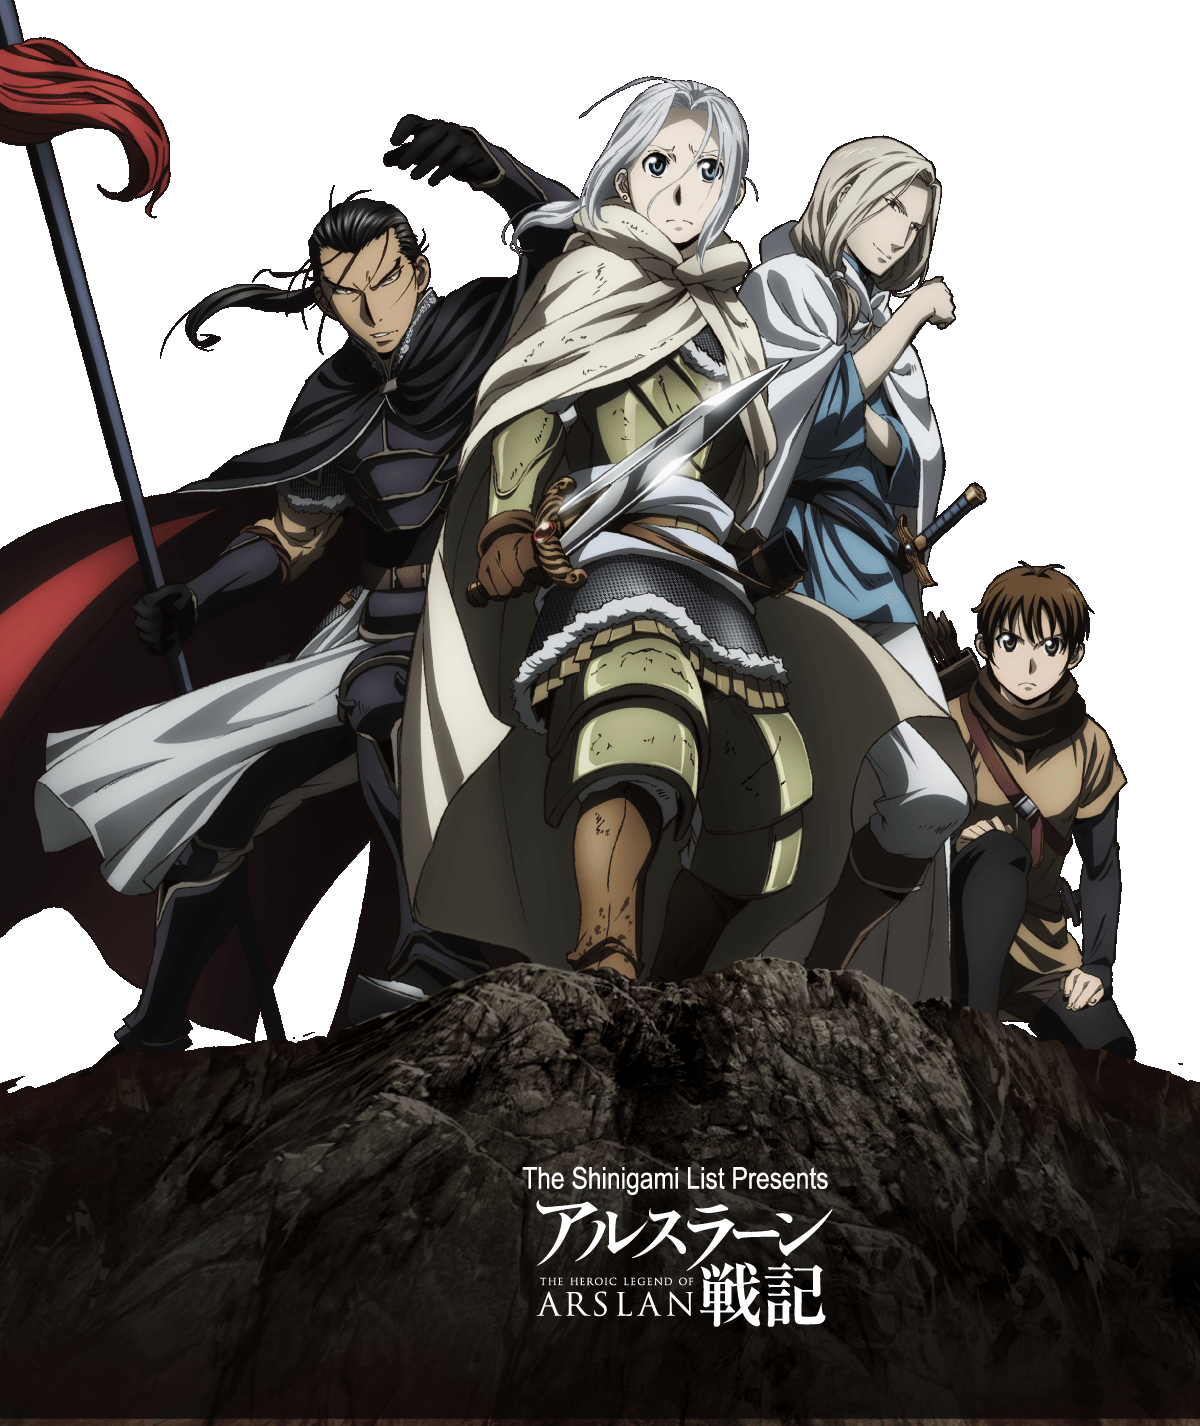 https://shinigamilist.files.wordpress.com/2015/03/arslan-senki-anime-poster.png